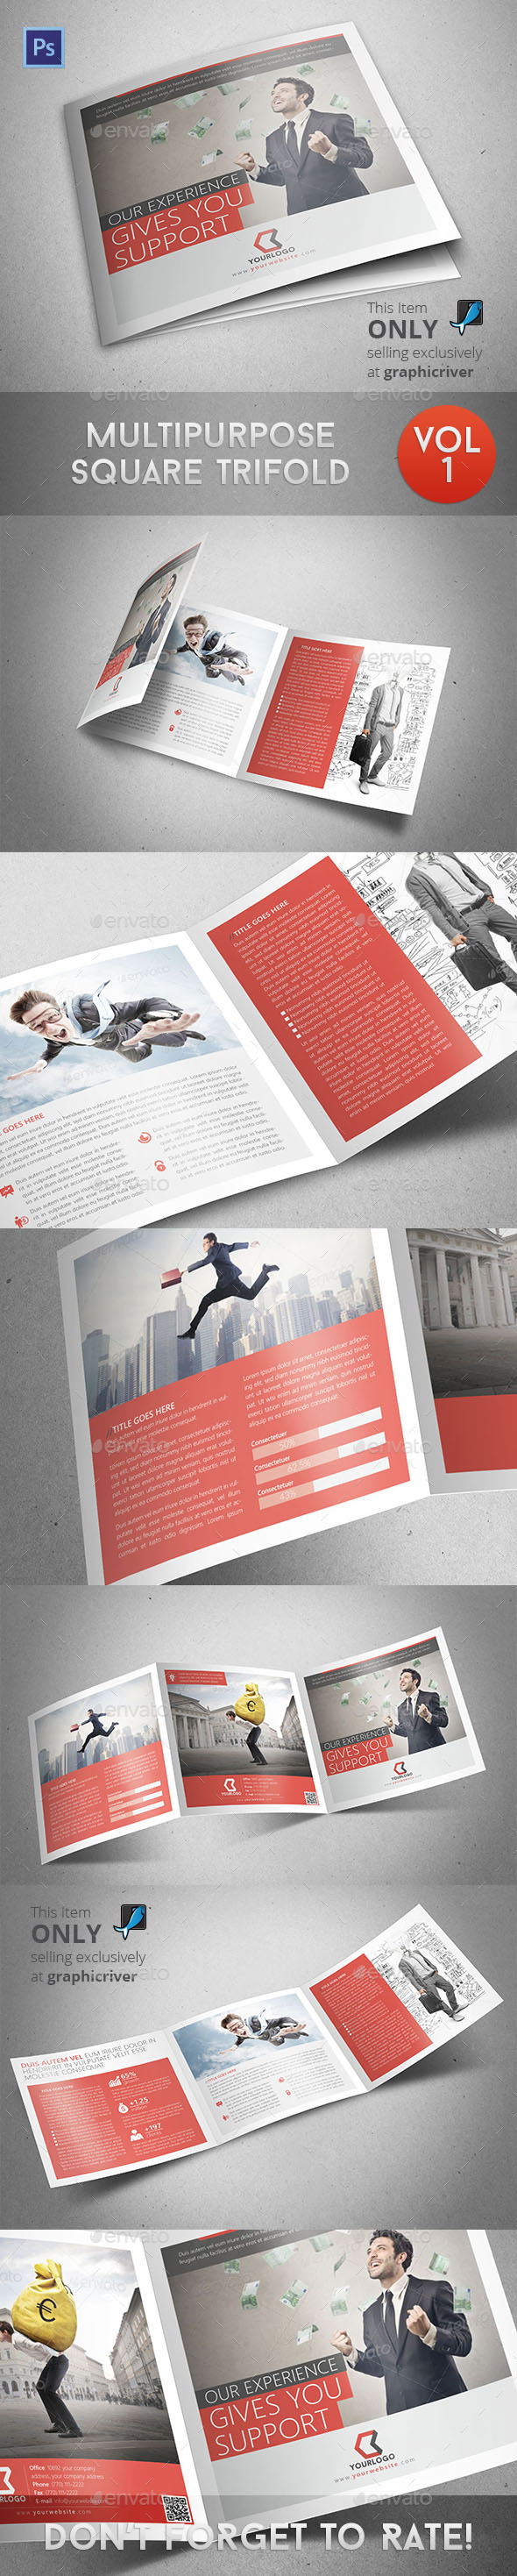 Multipurpose Square Trifold - Informational Brochures